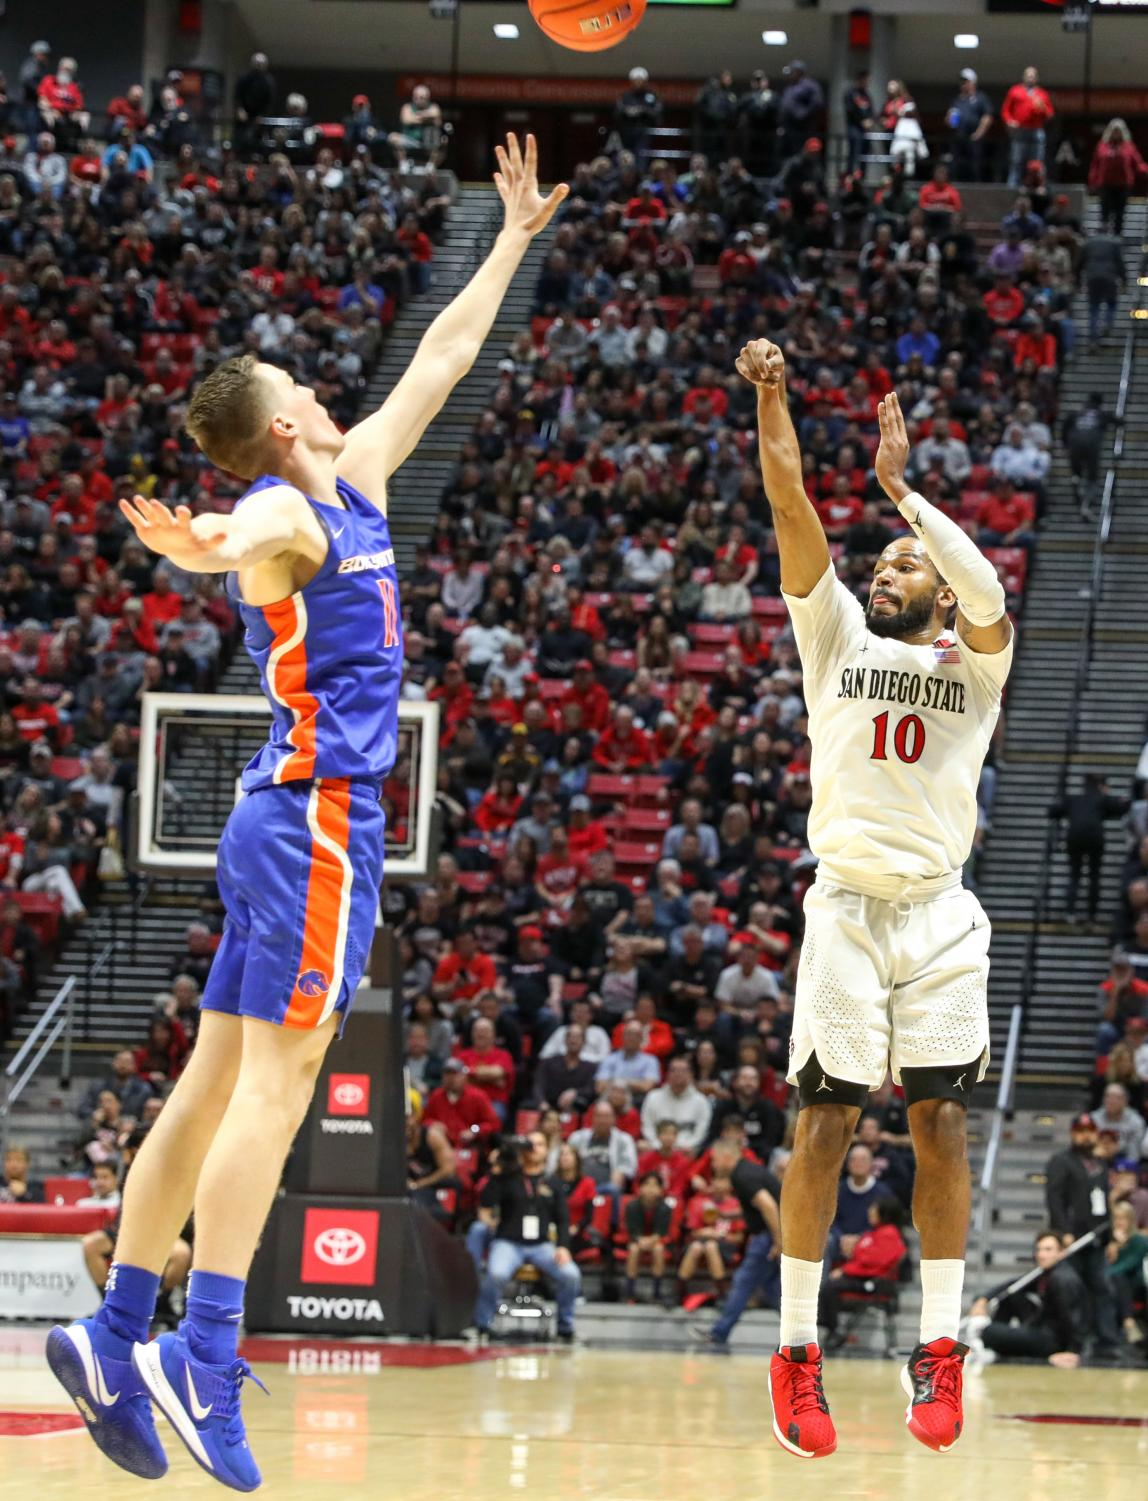 Senior guard KJ Feagin shoots over a Boise State defender during the Aztecs' 83-65 win on Jan. 11 at Viejas Arena.